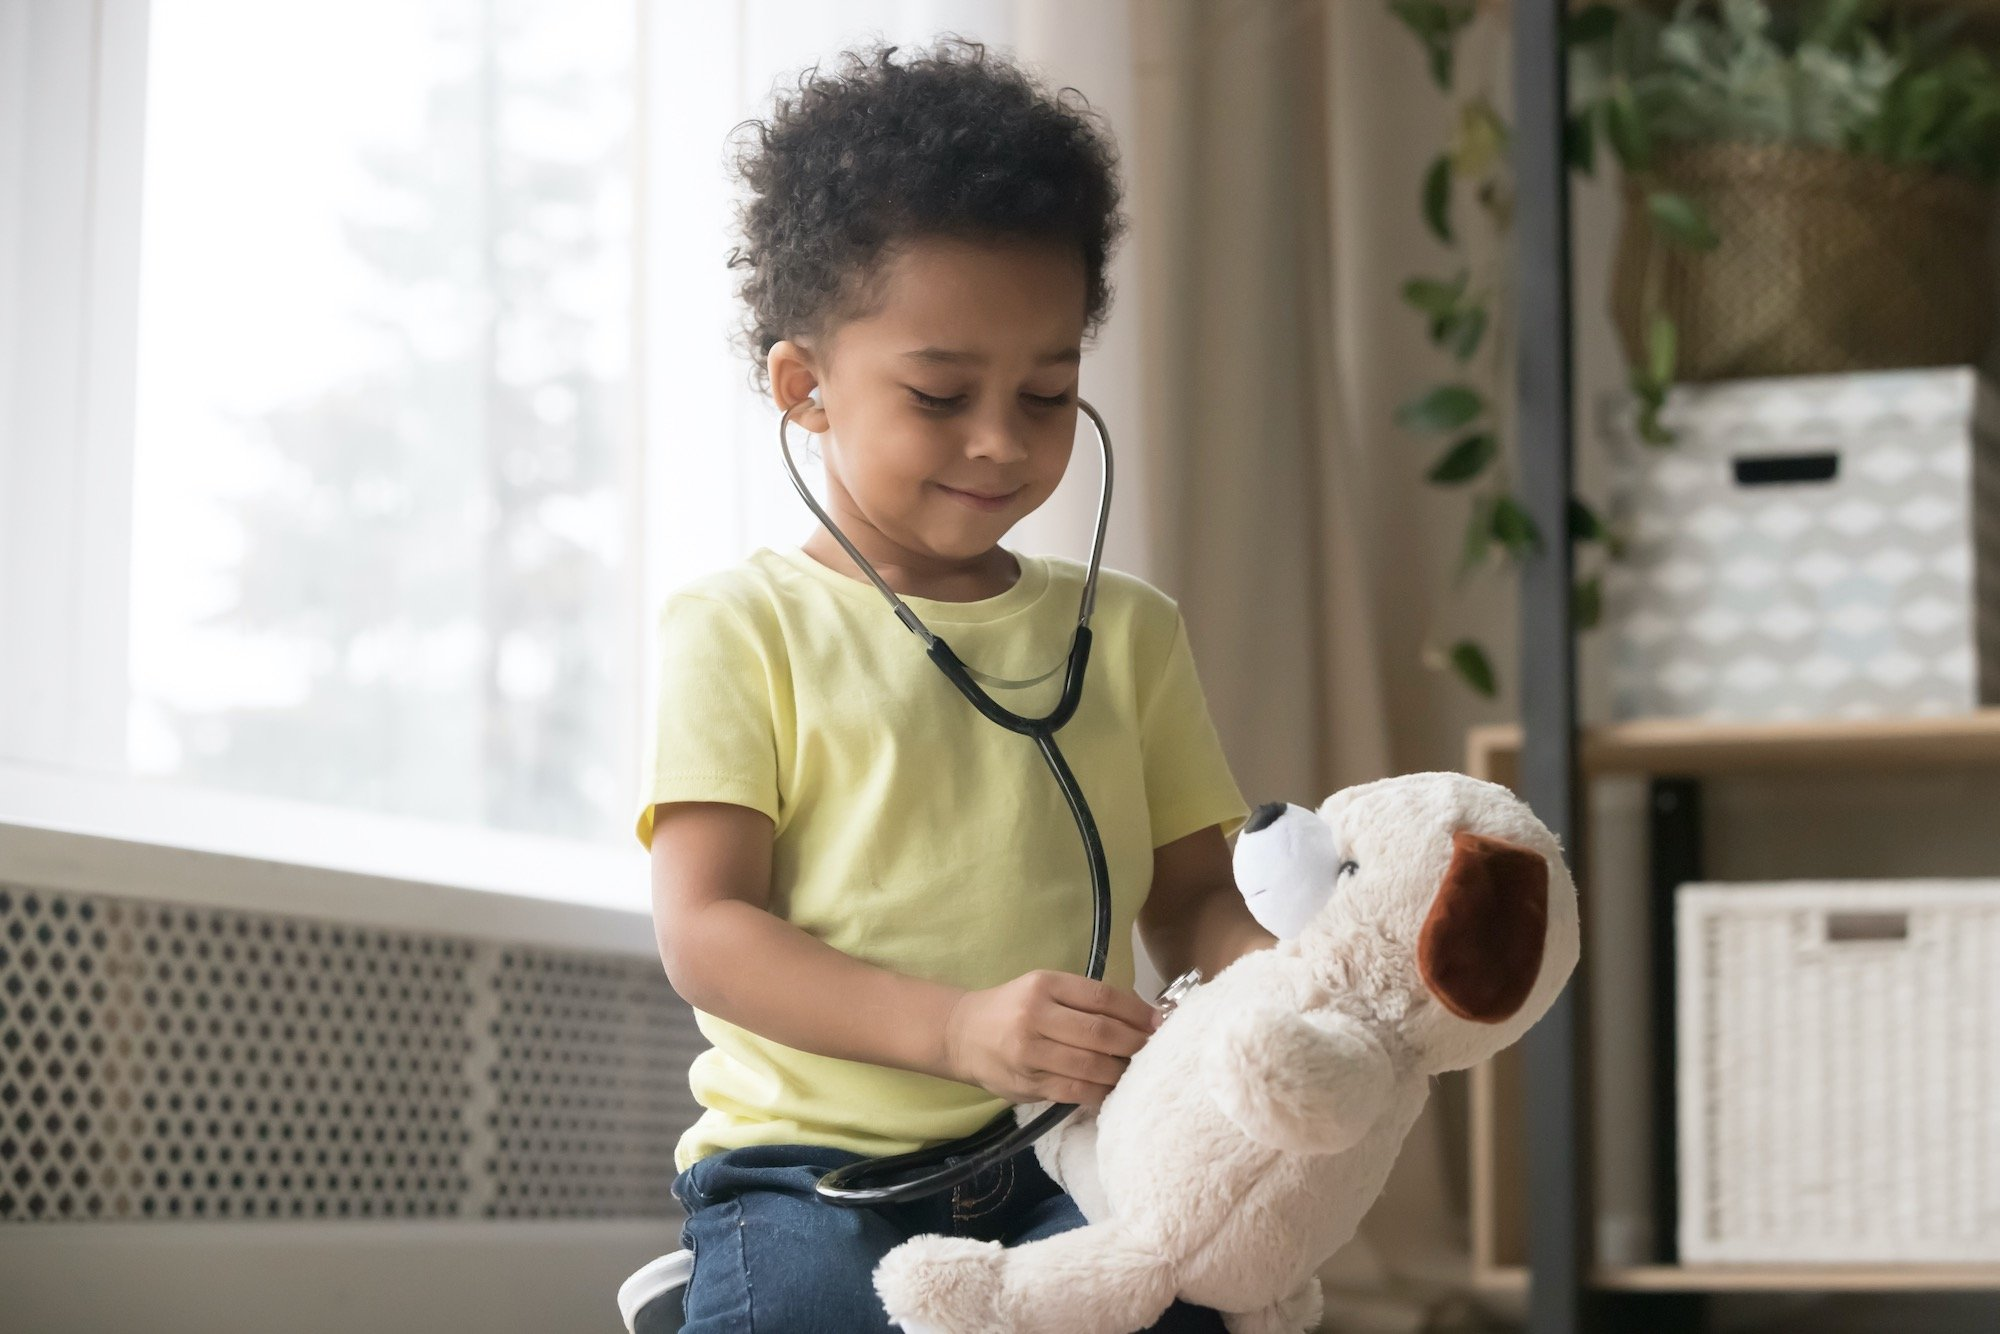 Young Pediatric Patient with Stethoscope Listening to Teddy Bear